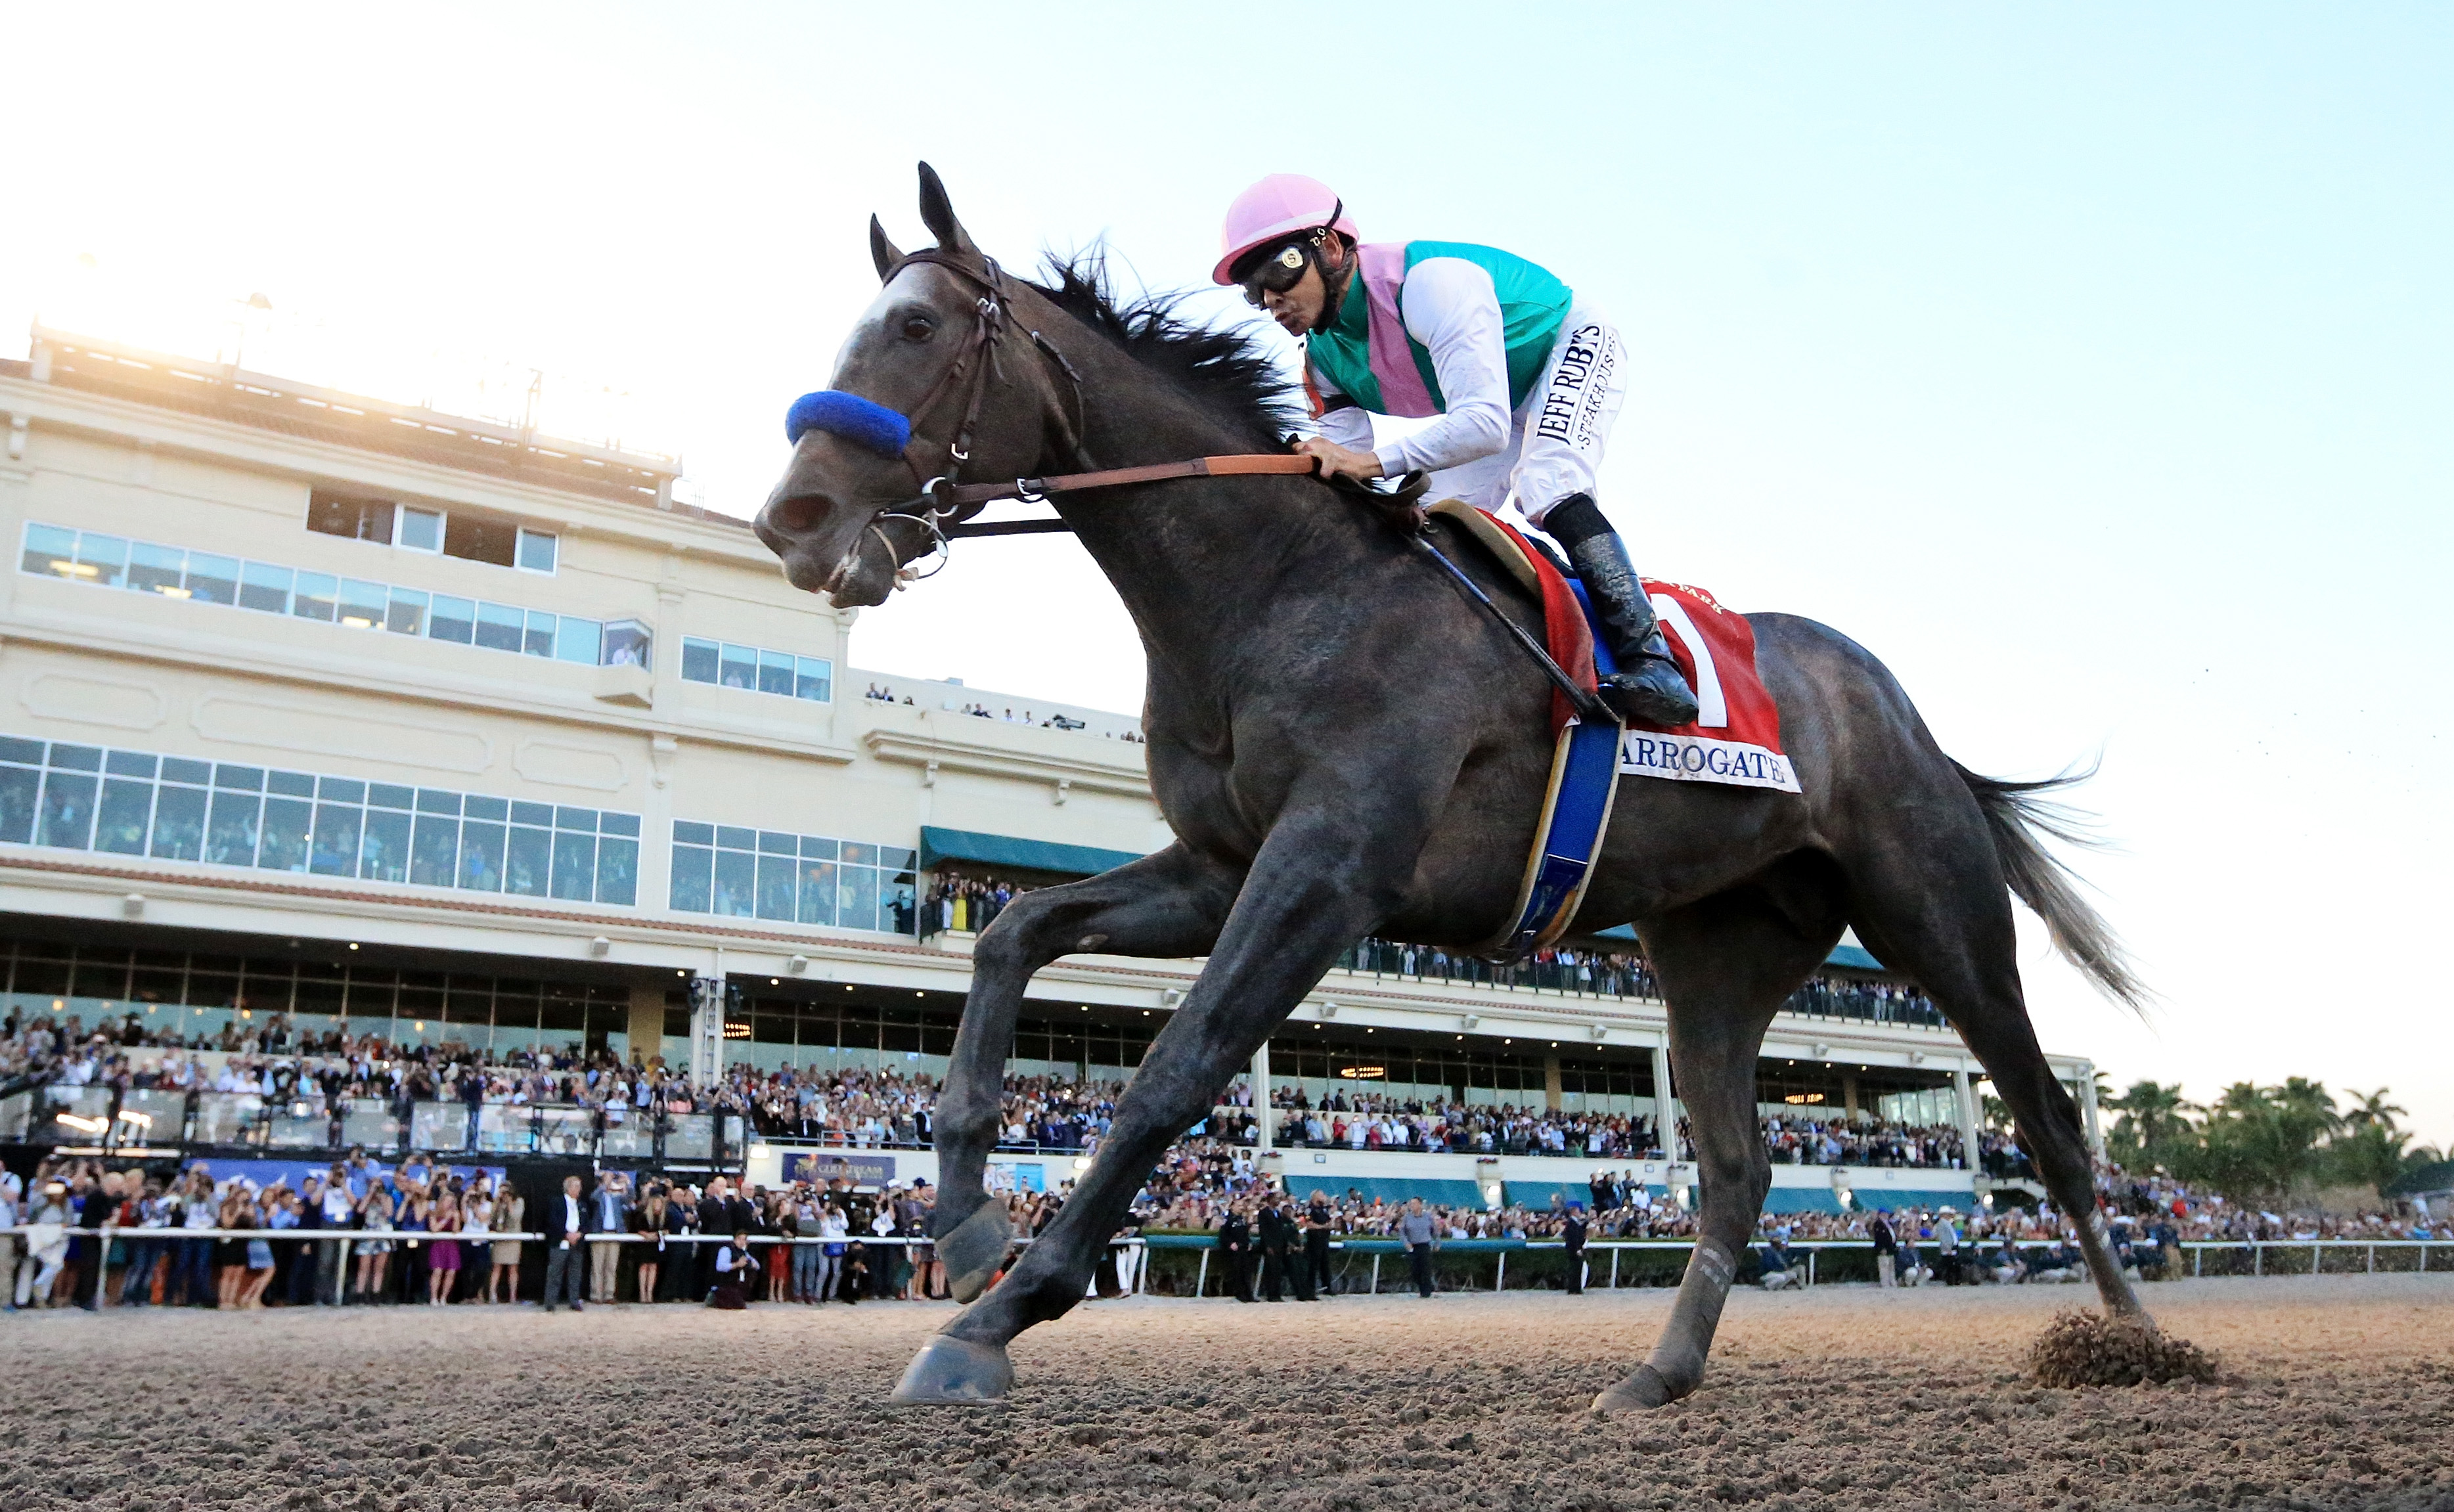 Arrogate crosses the finishline to win the $12 Million Pegasus World Cup Invitational at Gulfstream Park. (Getty Images)